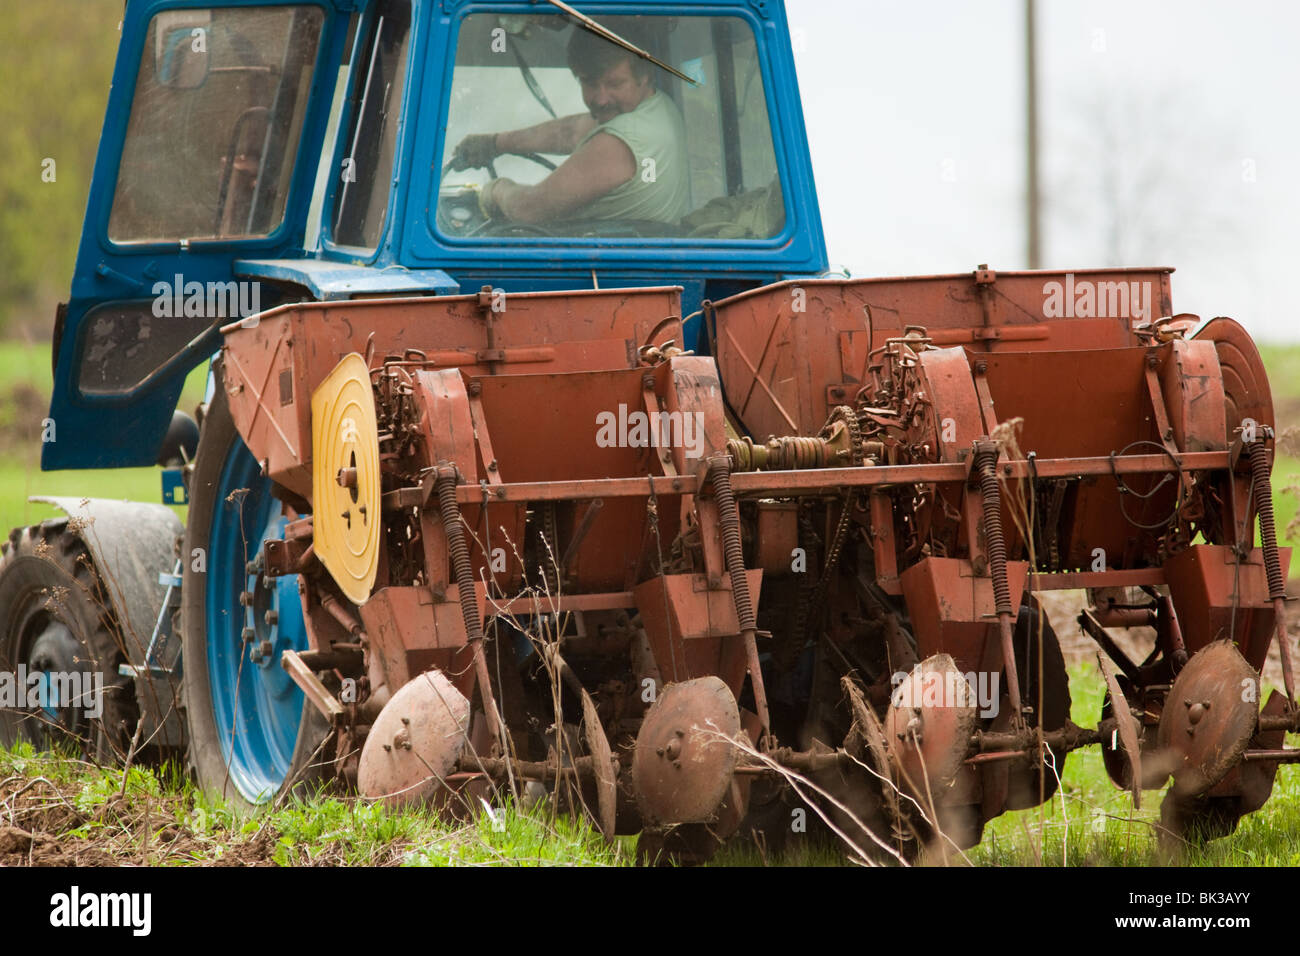 The tractor with a plough ploughs a meadow. - Stock Image